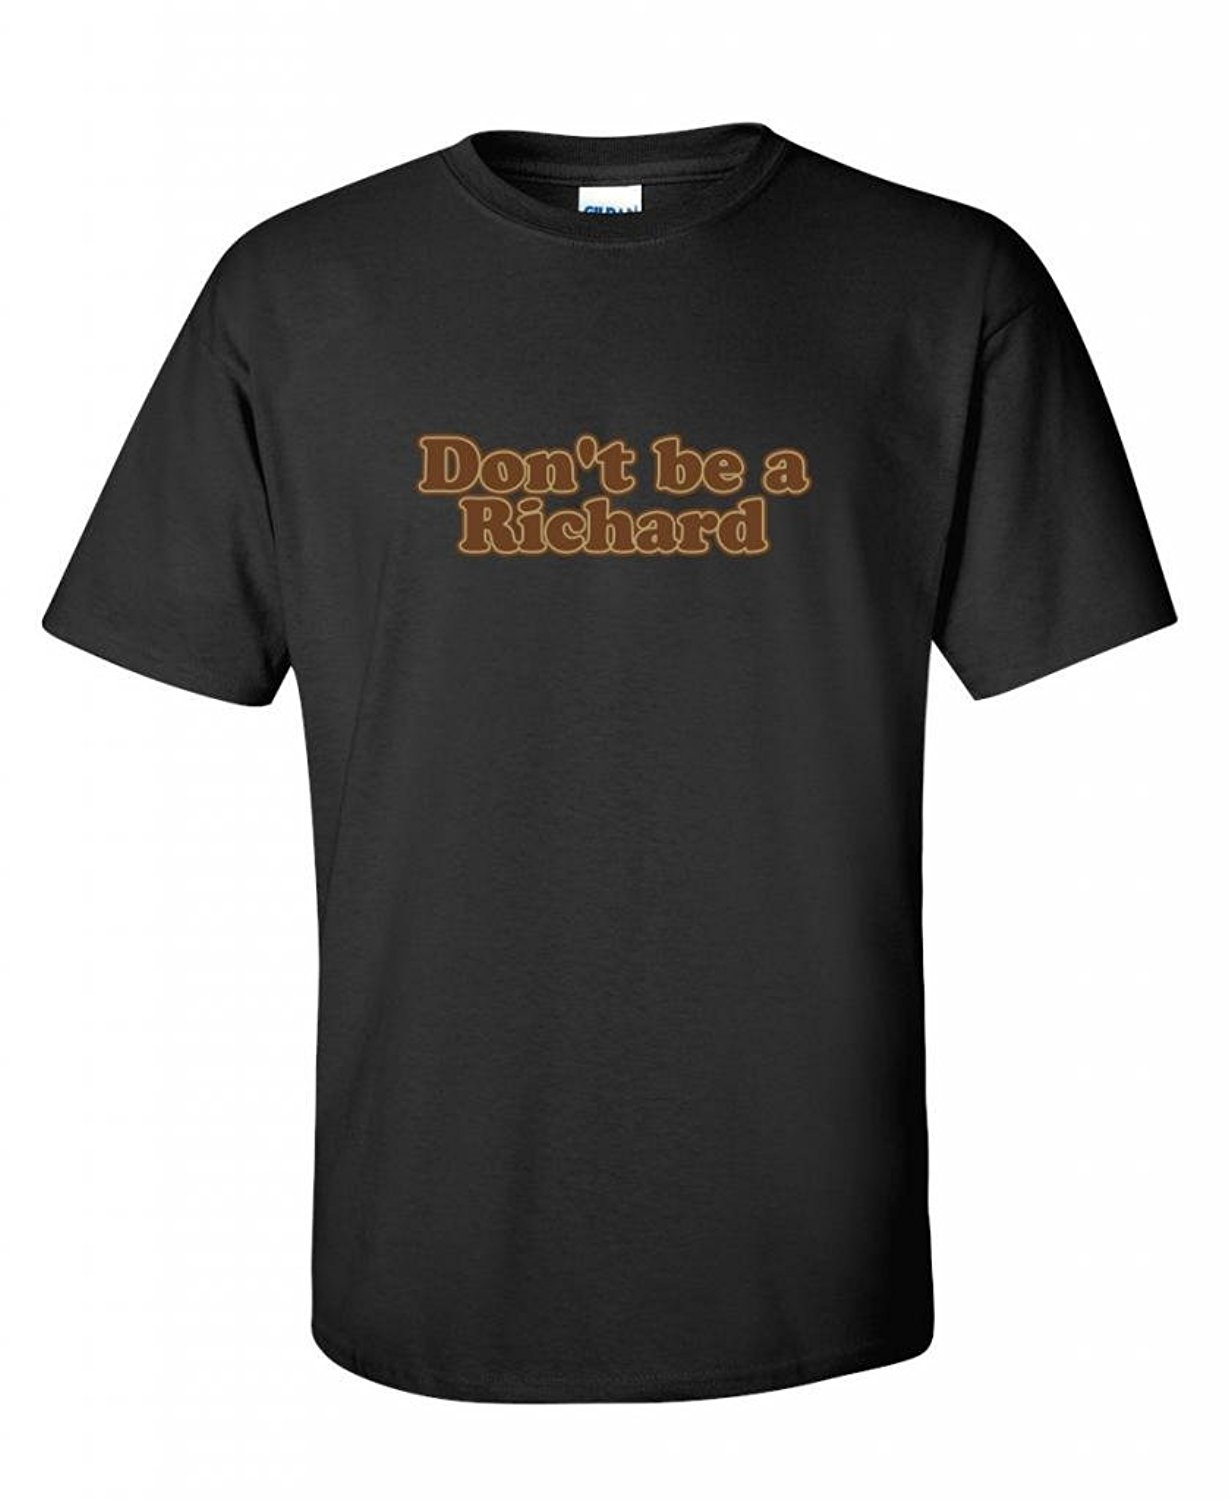 Brand+ 2017 Newest Summer Color Don't Be A Richard Offensive Rude Gift Idea Mens Novelty Very Funny T-Shirt